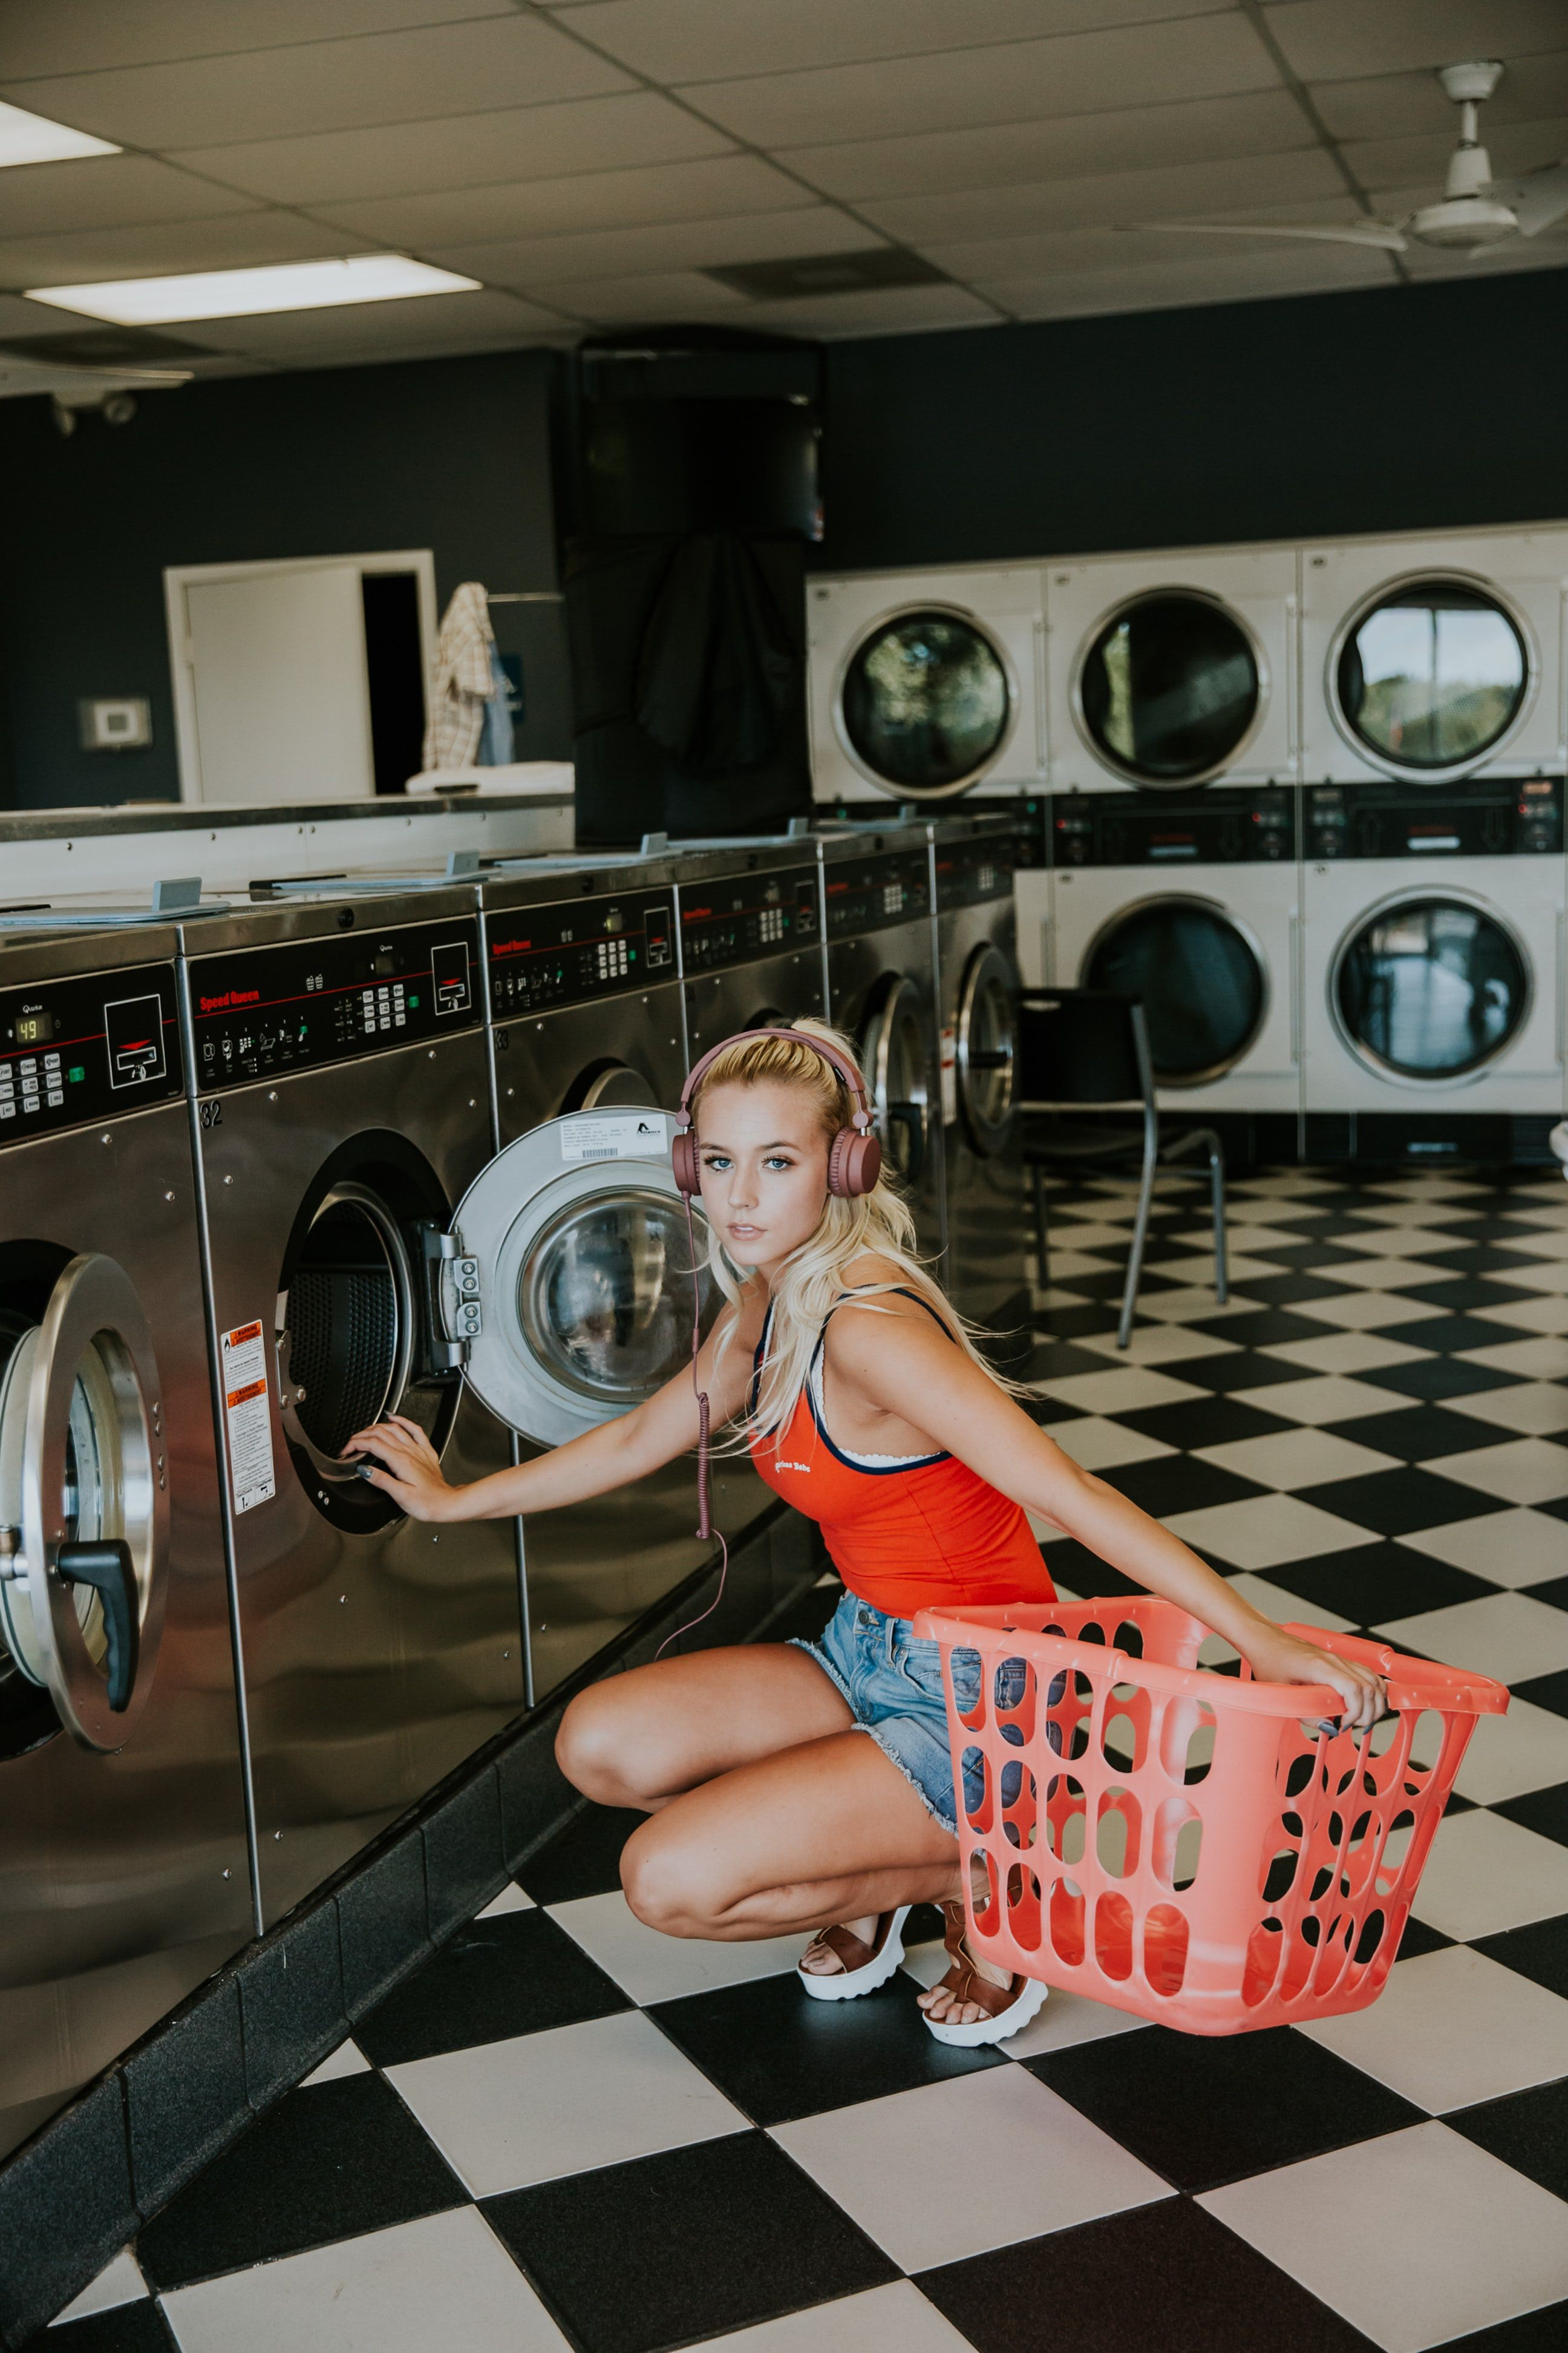 A Blonde Woman In Headphones Crouching Next To A Laundromat With A Laundry Basket Washing Clothes Laundry Shop Clean Washing Machine